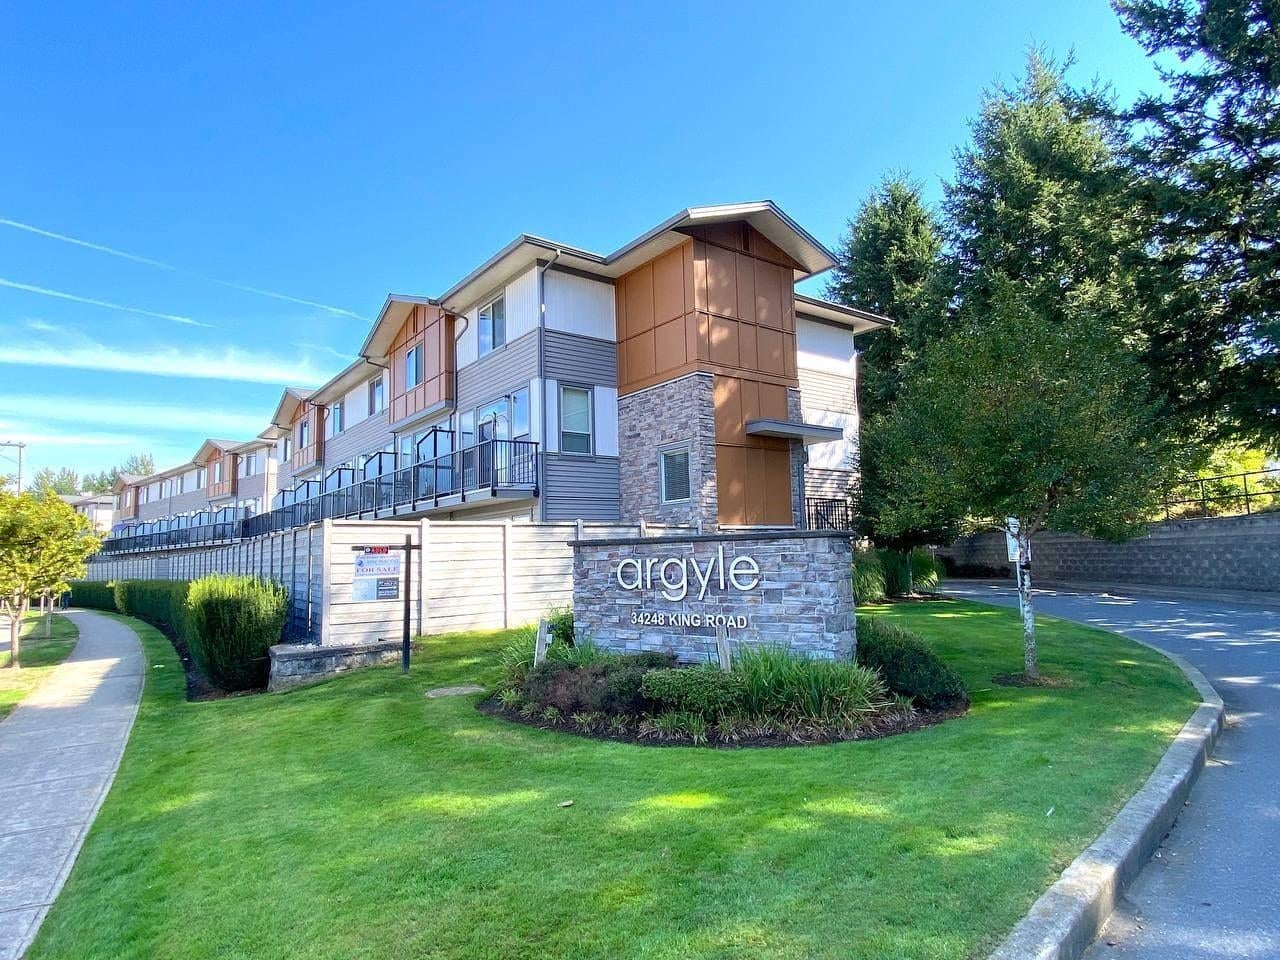 65 34248 KING ROAD - Poplar Townhouse for sale, 2 Bedrooms (R2620723) - #1